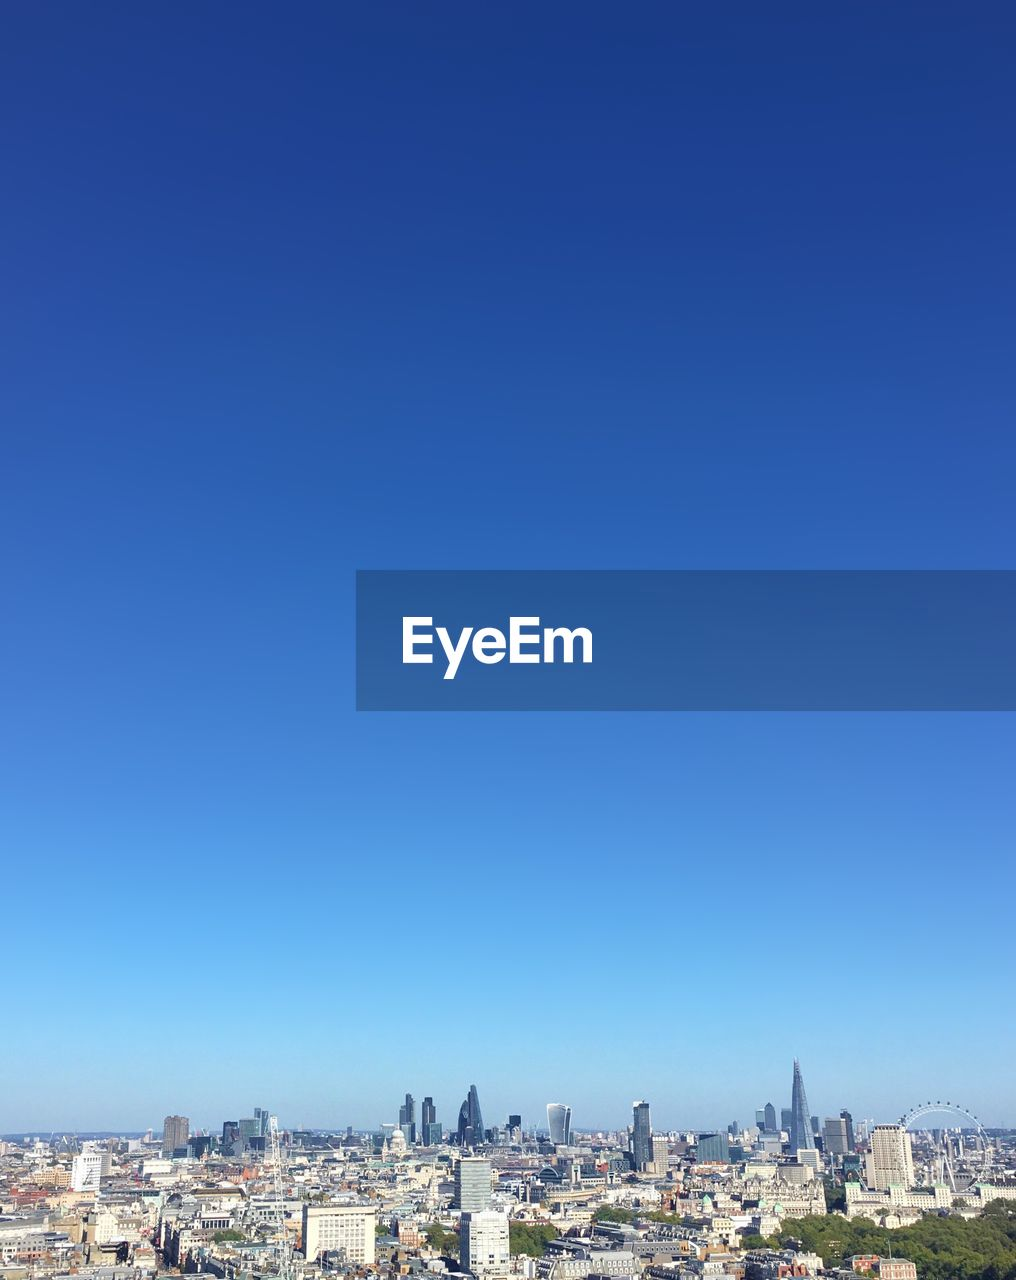 VIEW OF CITYSCAPE AGAINST BLUE SKY